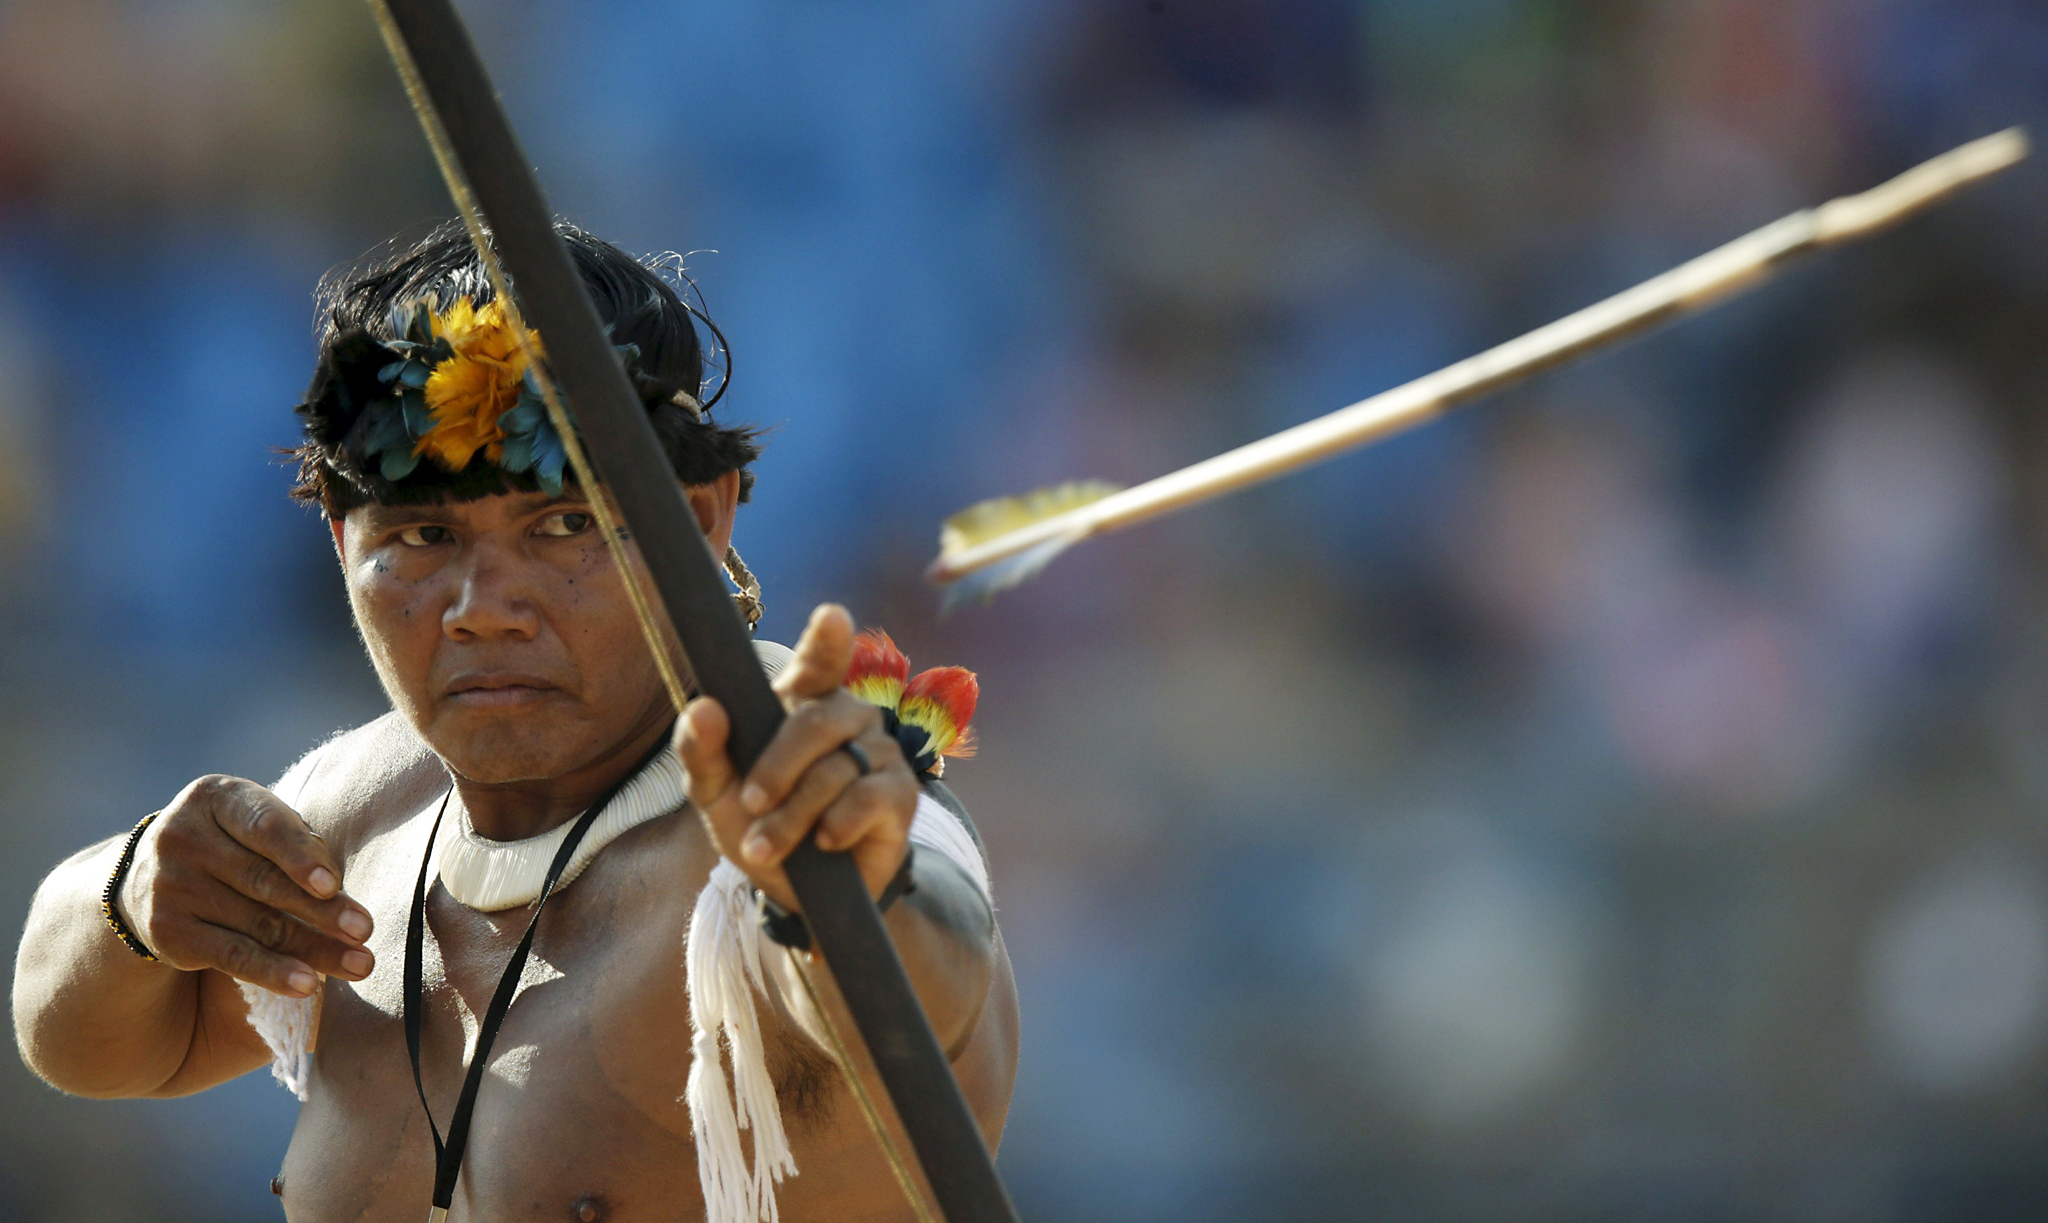 An indigenous man from Kuikuru fires an arrow during the bow-and-arrow competition at the first World Games for Indigenous Peoples in Palmas...An indigenous man from Kuikuru fires an arrow during the bow-and-arrow competition at the first World Games for Indigenous Peoples in Palmas, Brazil, October 28, 2015. REUTERS/Ueslei Marcelino